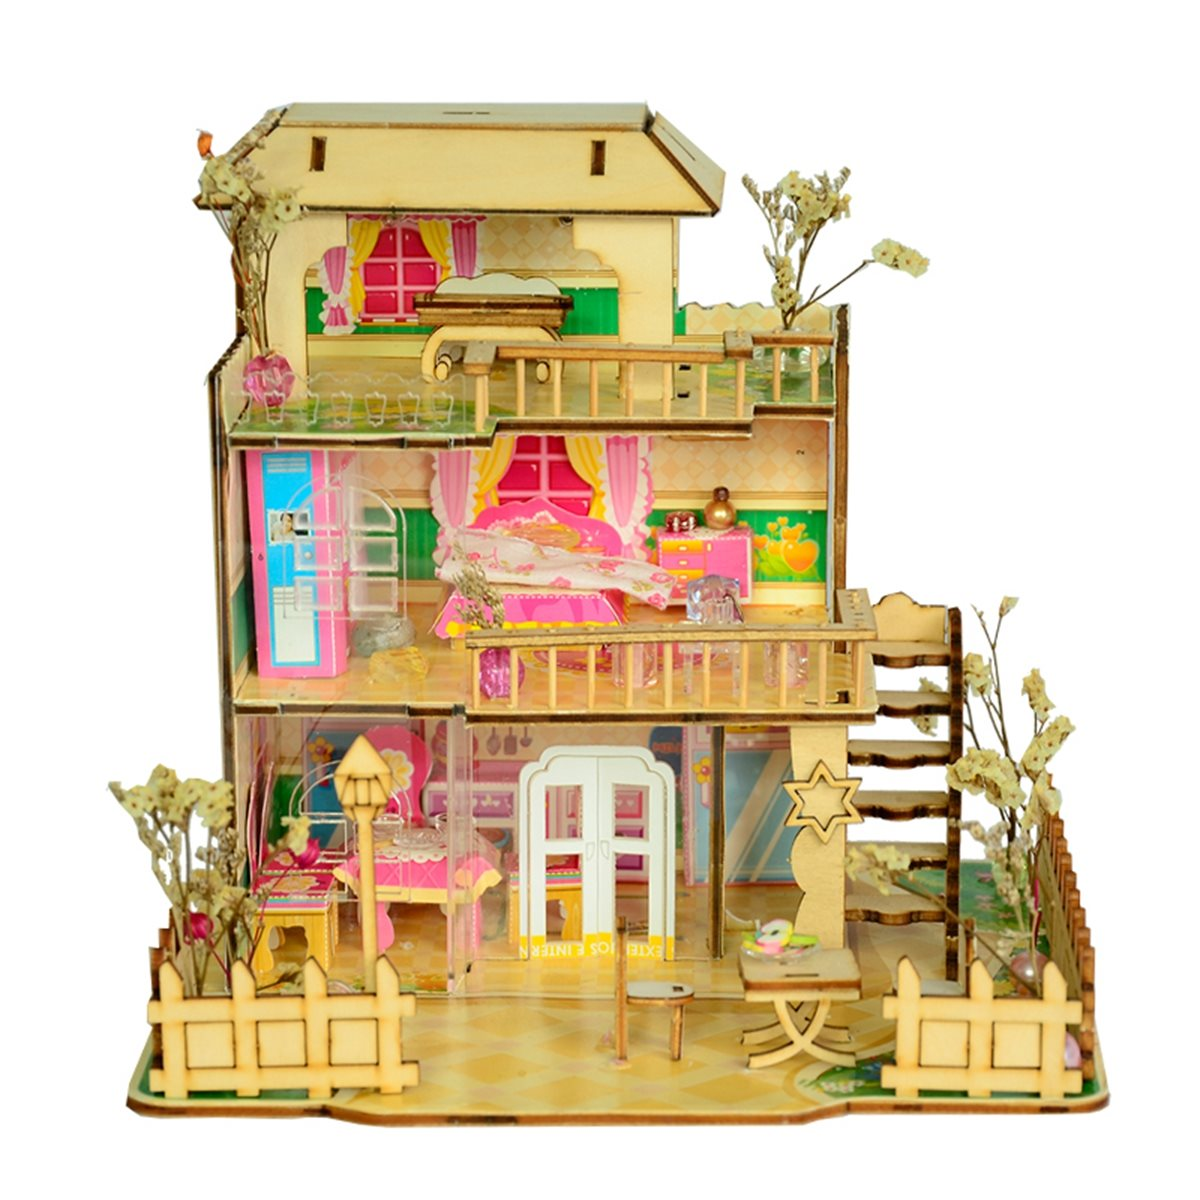 merry provence house room diy dollhouse kit with led light wood decoration miniaturas dollhouse toys for children birthday gifts - Small House Kit